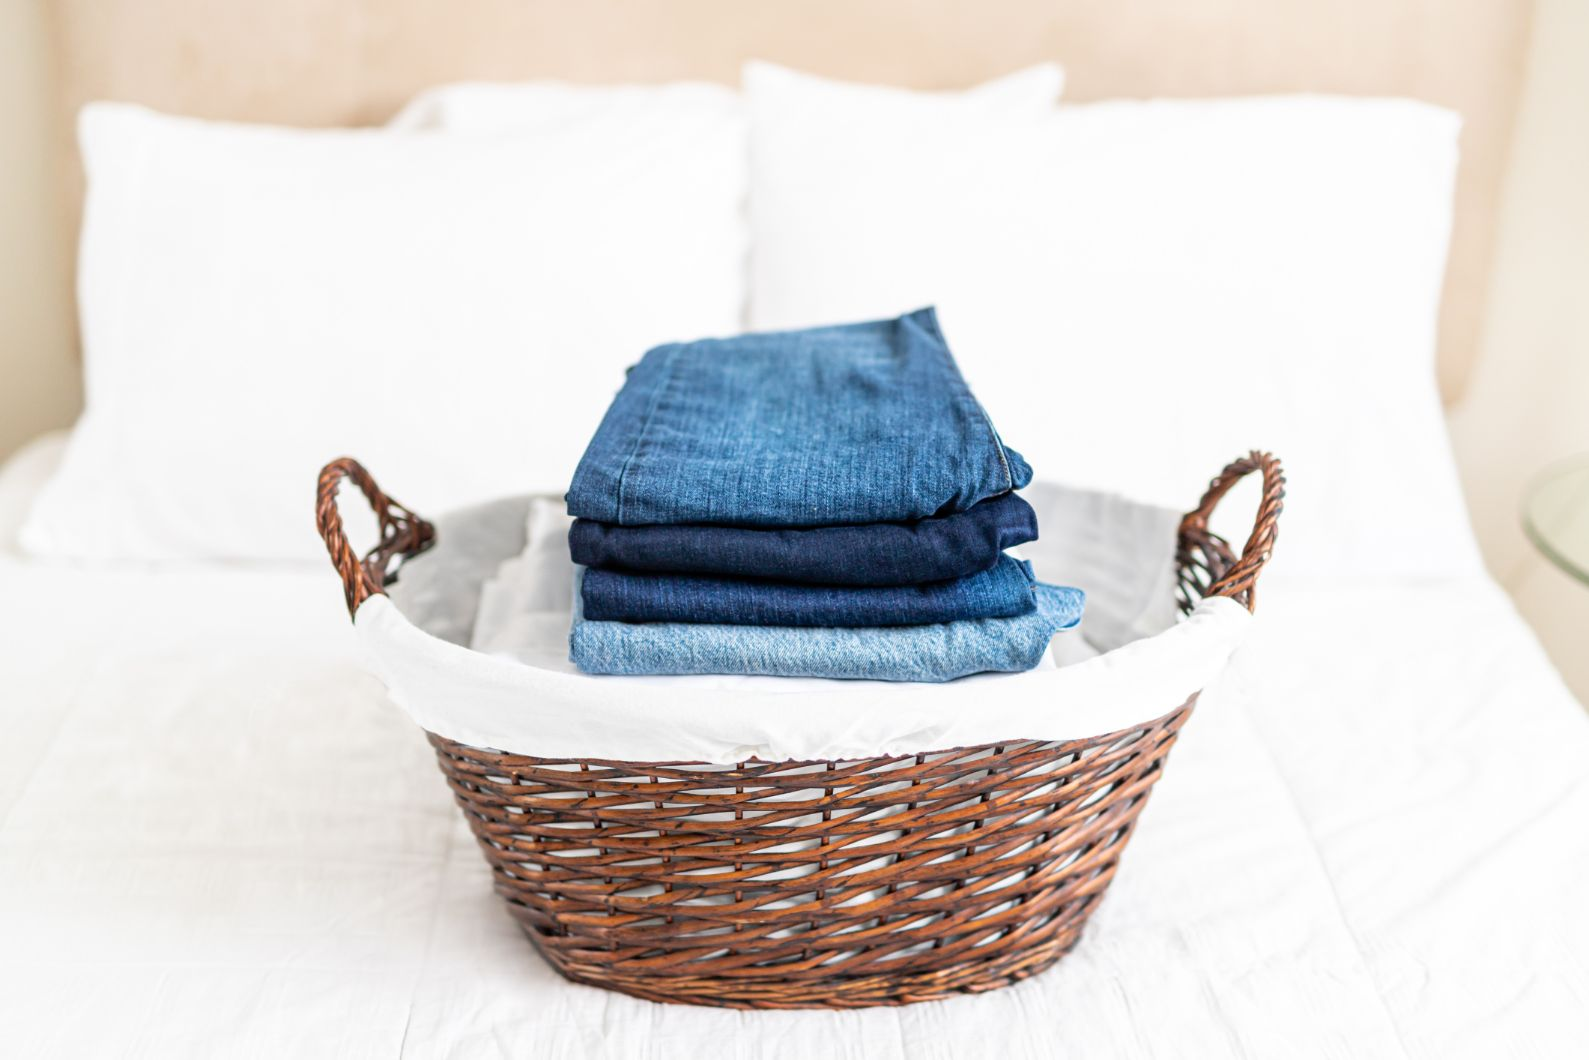 How to Wash Denim Jackets at Home